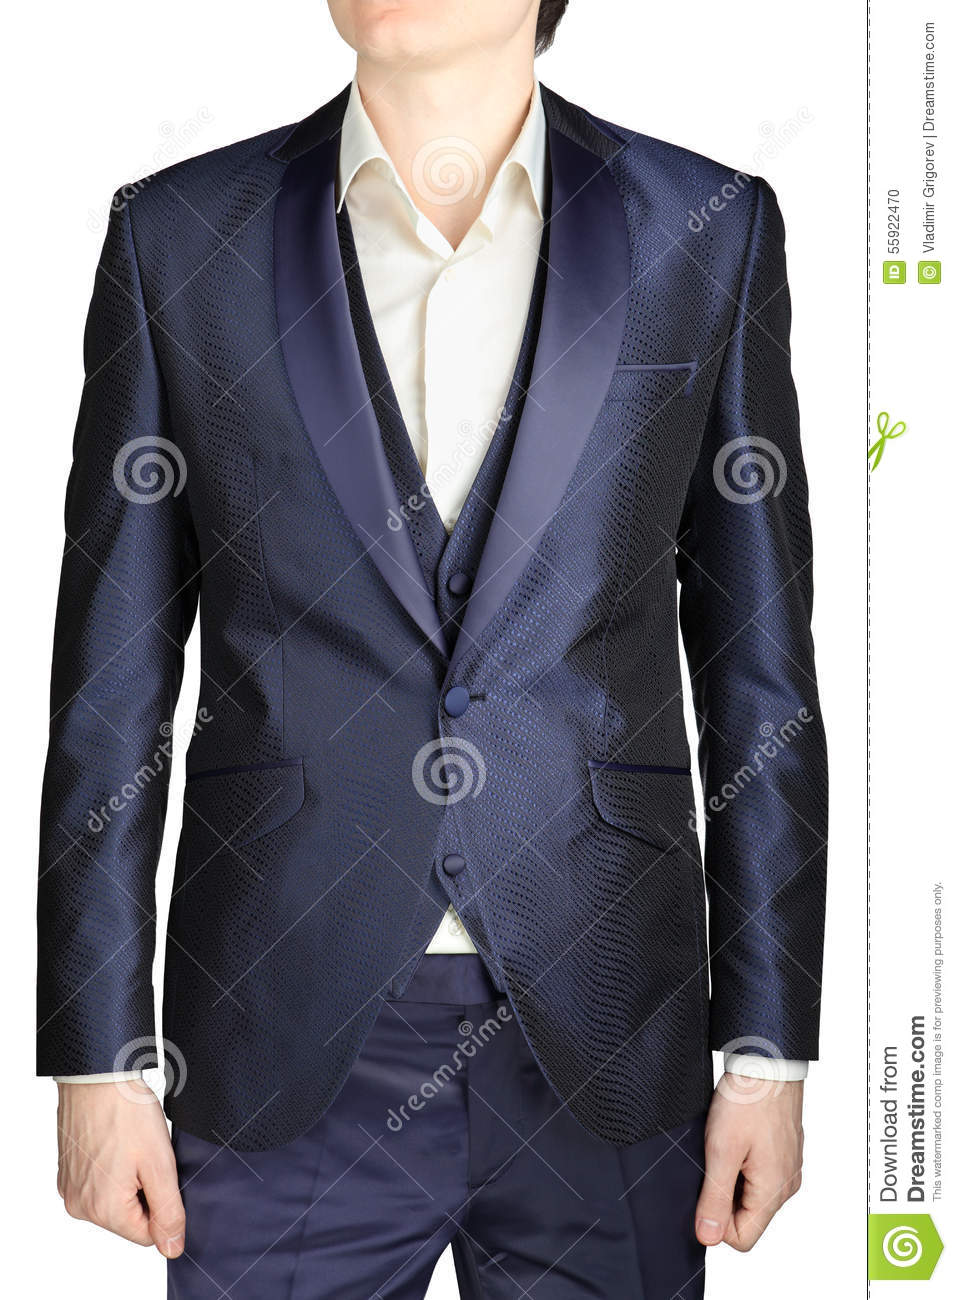 Navy Blue Mens Wedding Dress Groom Attire Blazer Vest Stock Photo Image Of Gown Suit 55922470,Champagne Silk Slip Wedding Dress